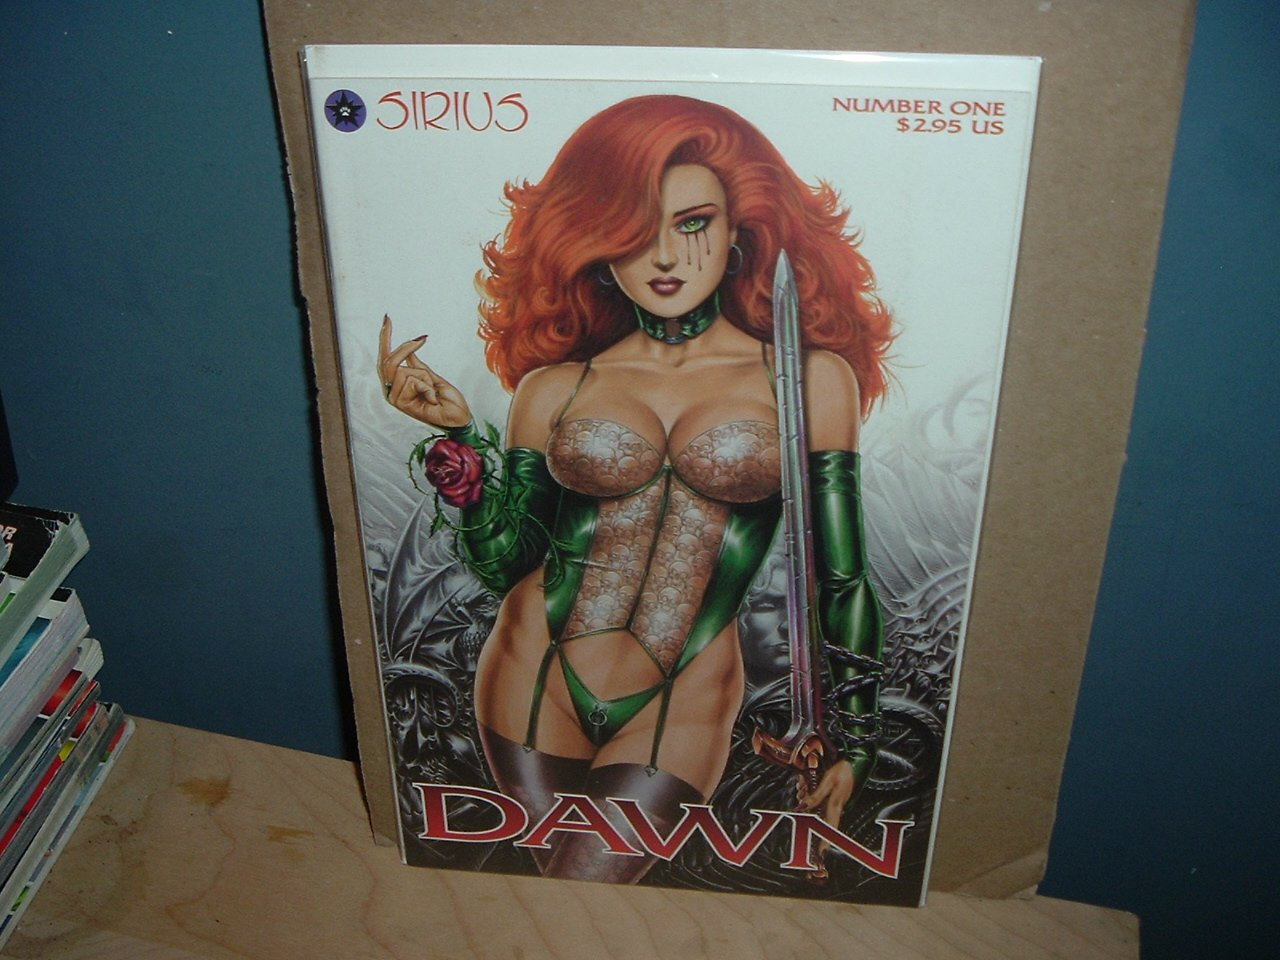 Dawn: Lucifer's Halo #1 FIRST PRINT (J. Michael Linsner, Sirius comics) great comic for sale